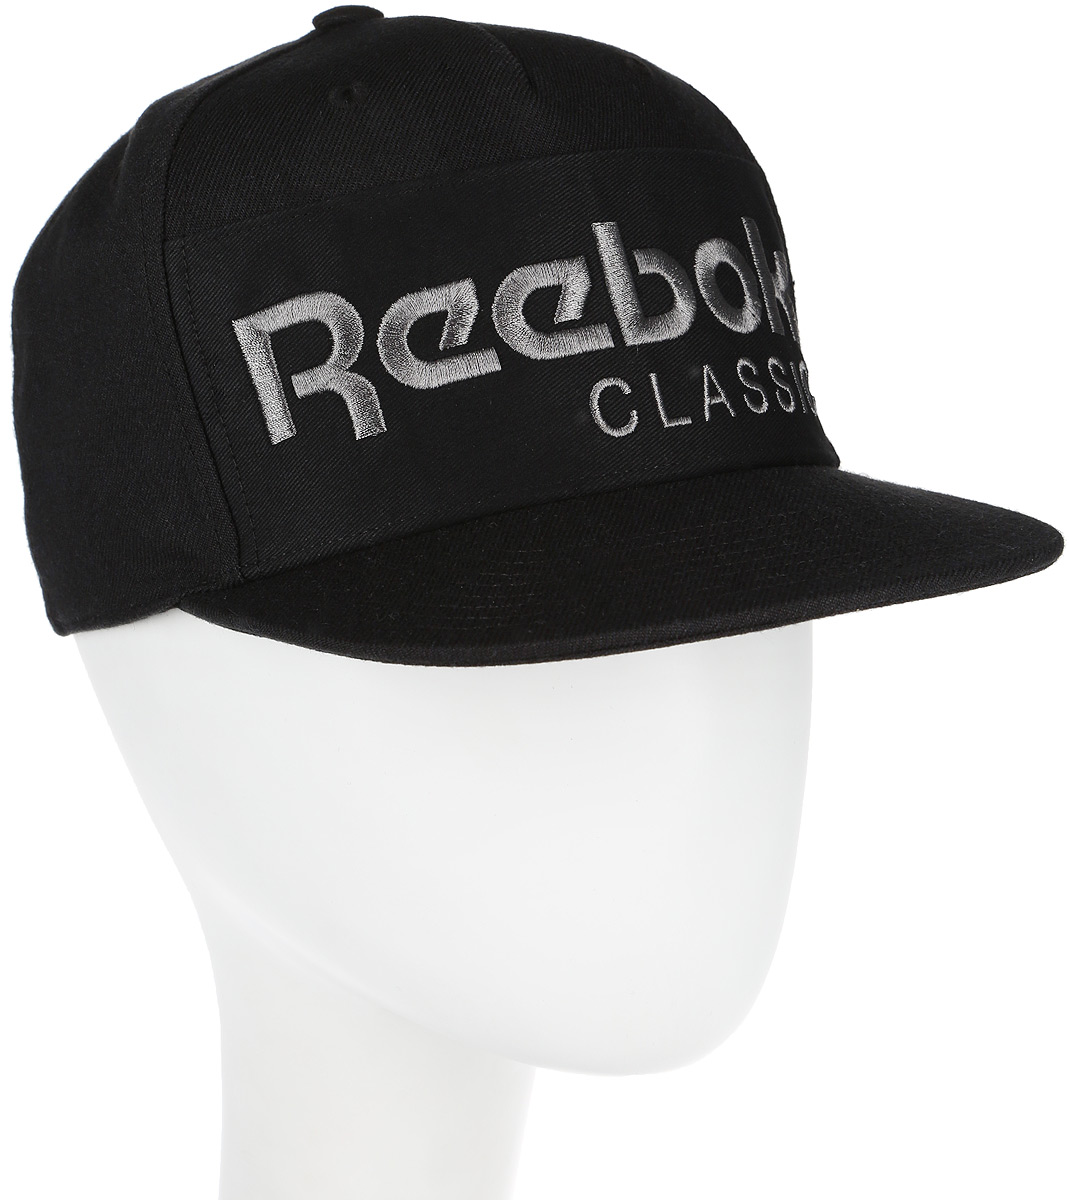 Бейсболка Reebok Cl Foundation Cap, цвет: черный. AX9965. Размер M (58) брюки mango брюки party